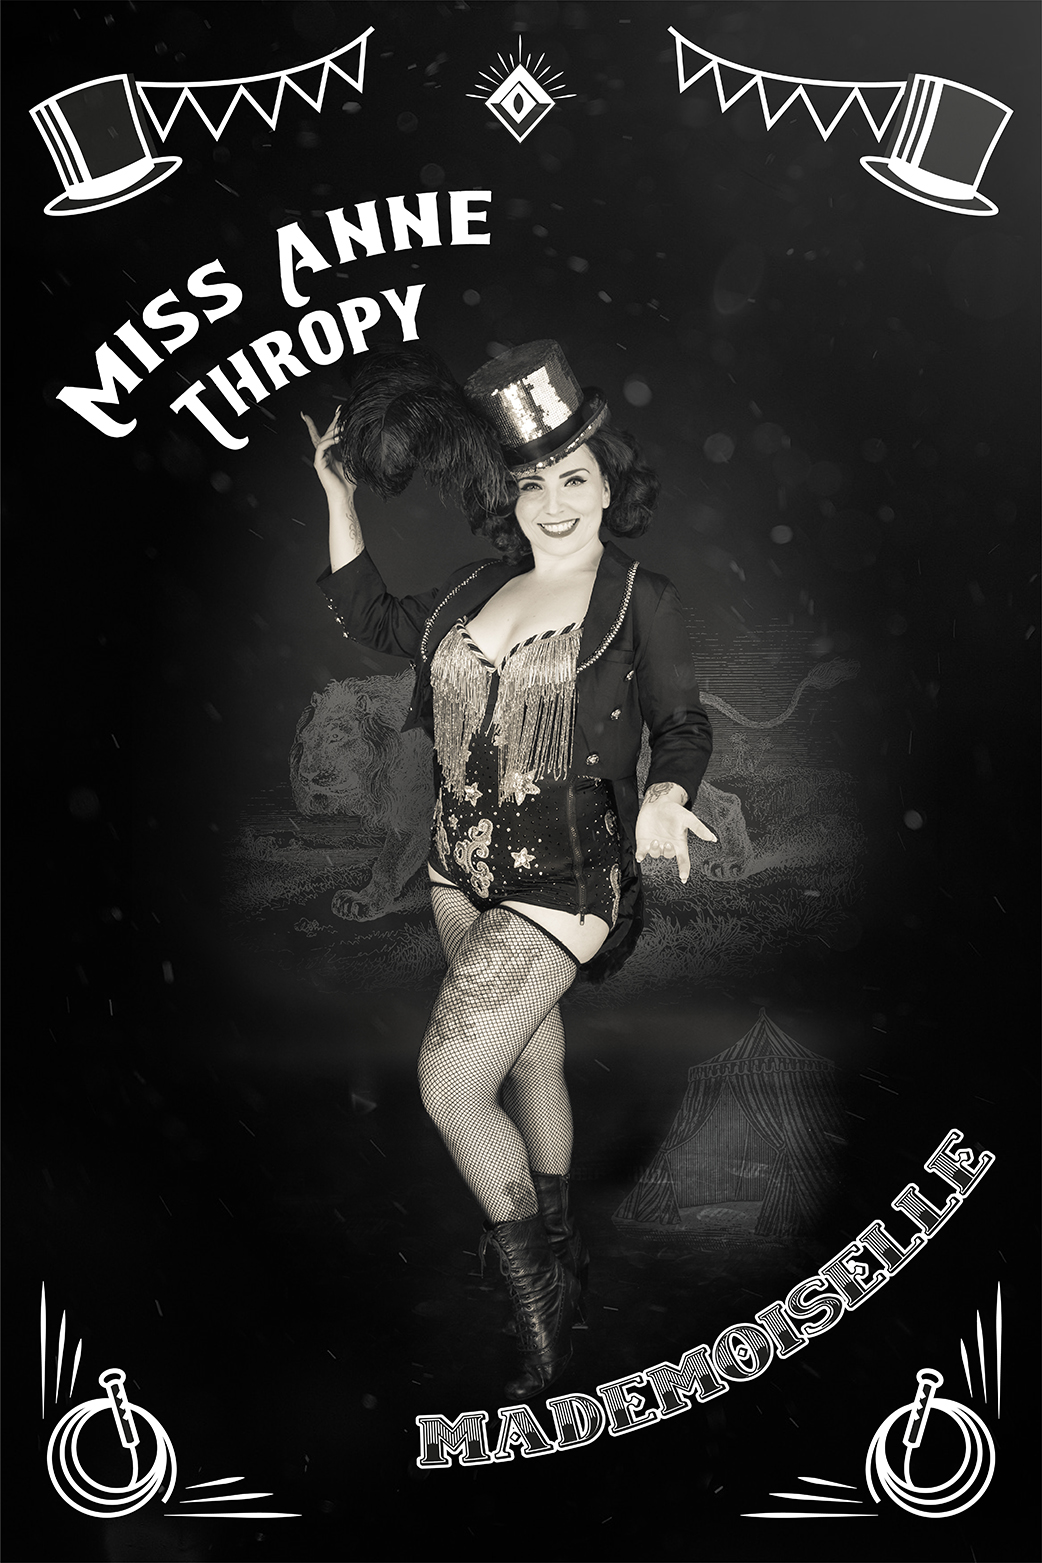 Miss Anne Thropy